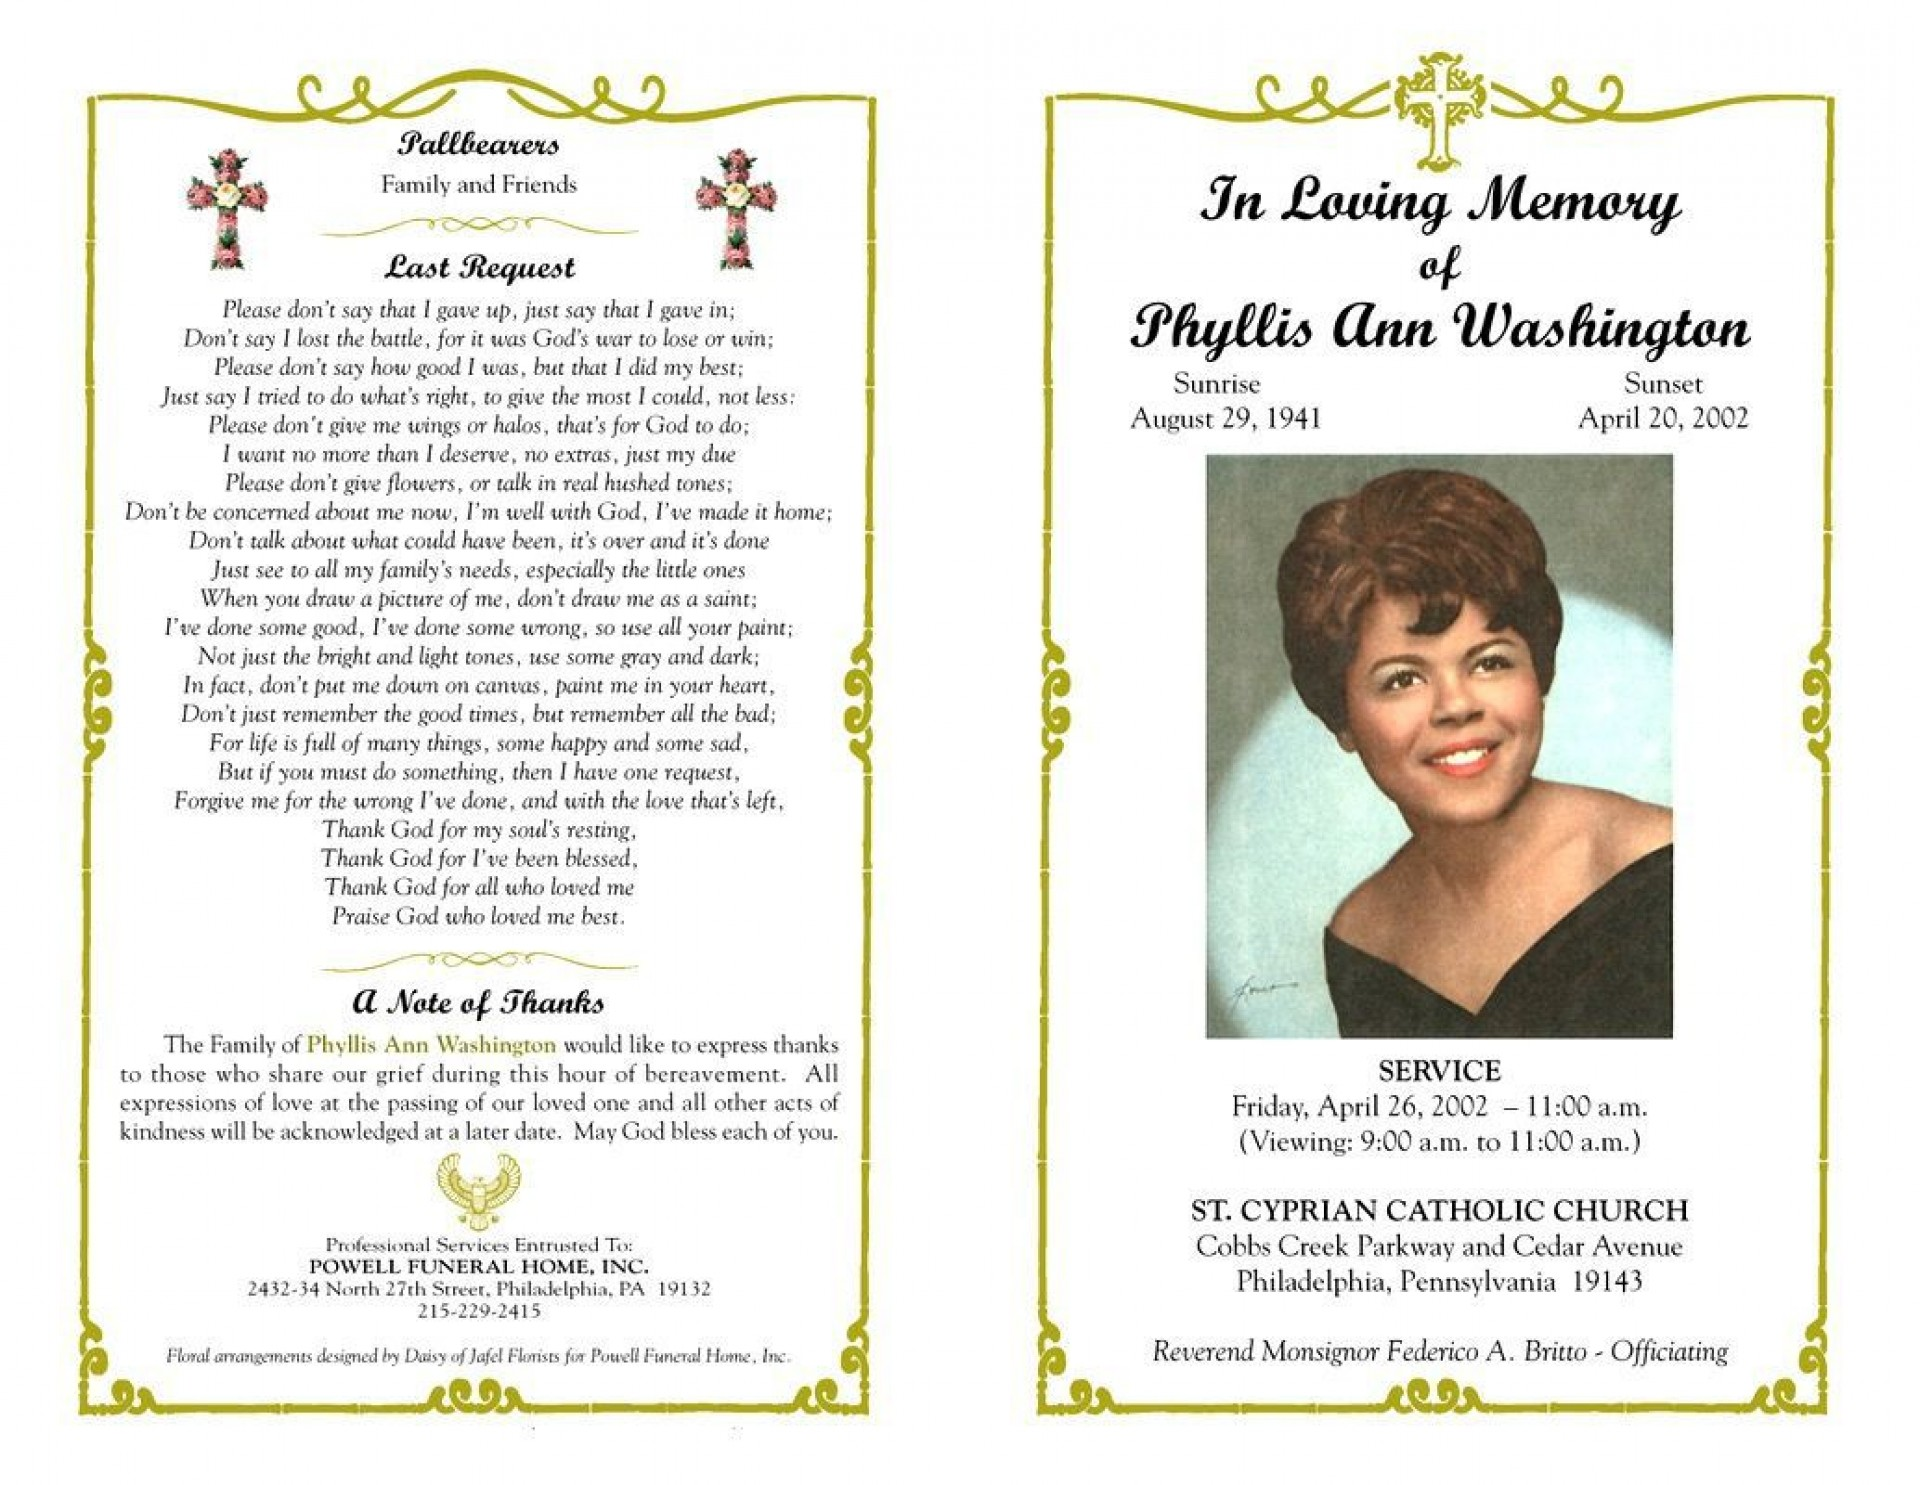 005 Exceptional Free Memorial Service Program Template Design  Microsoft Word Funeral Download1920